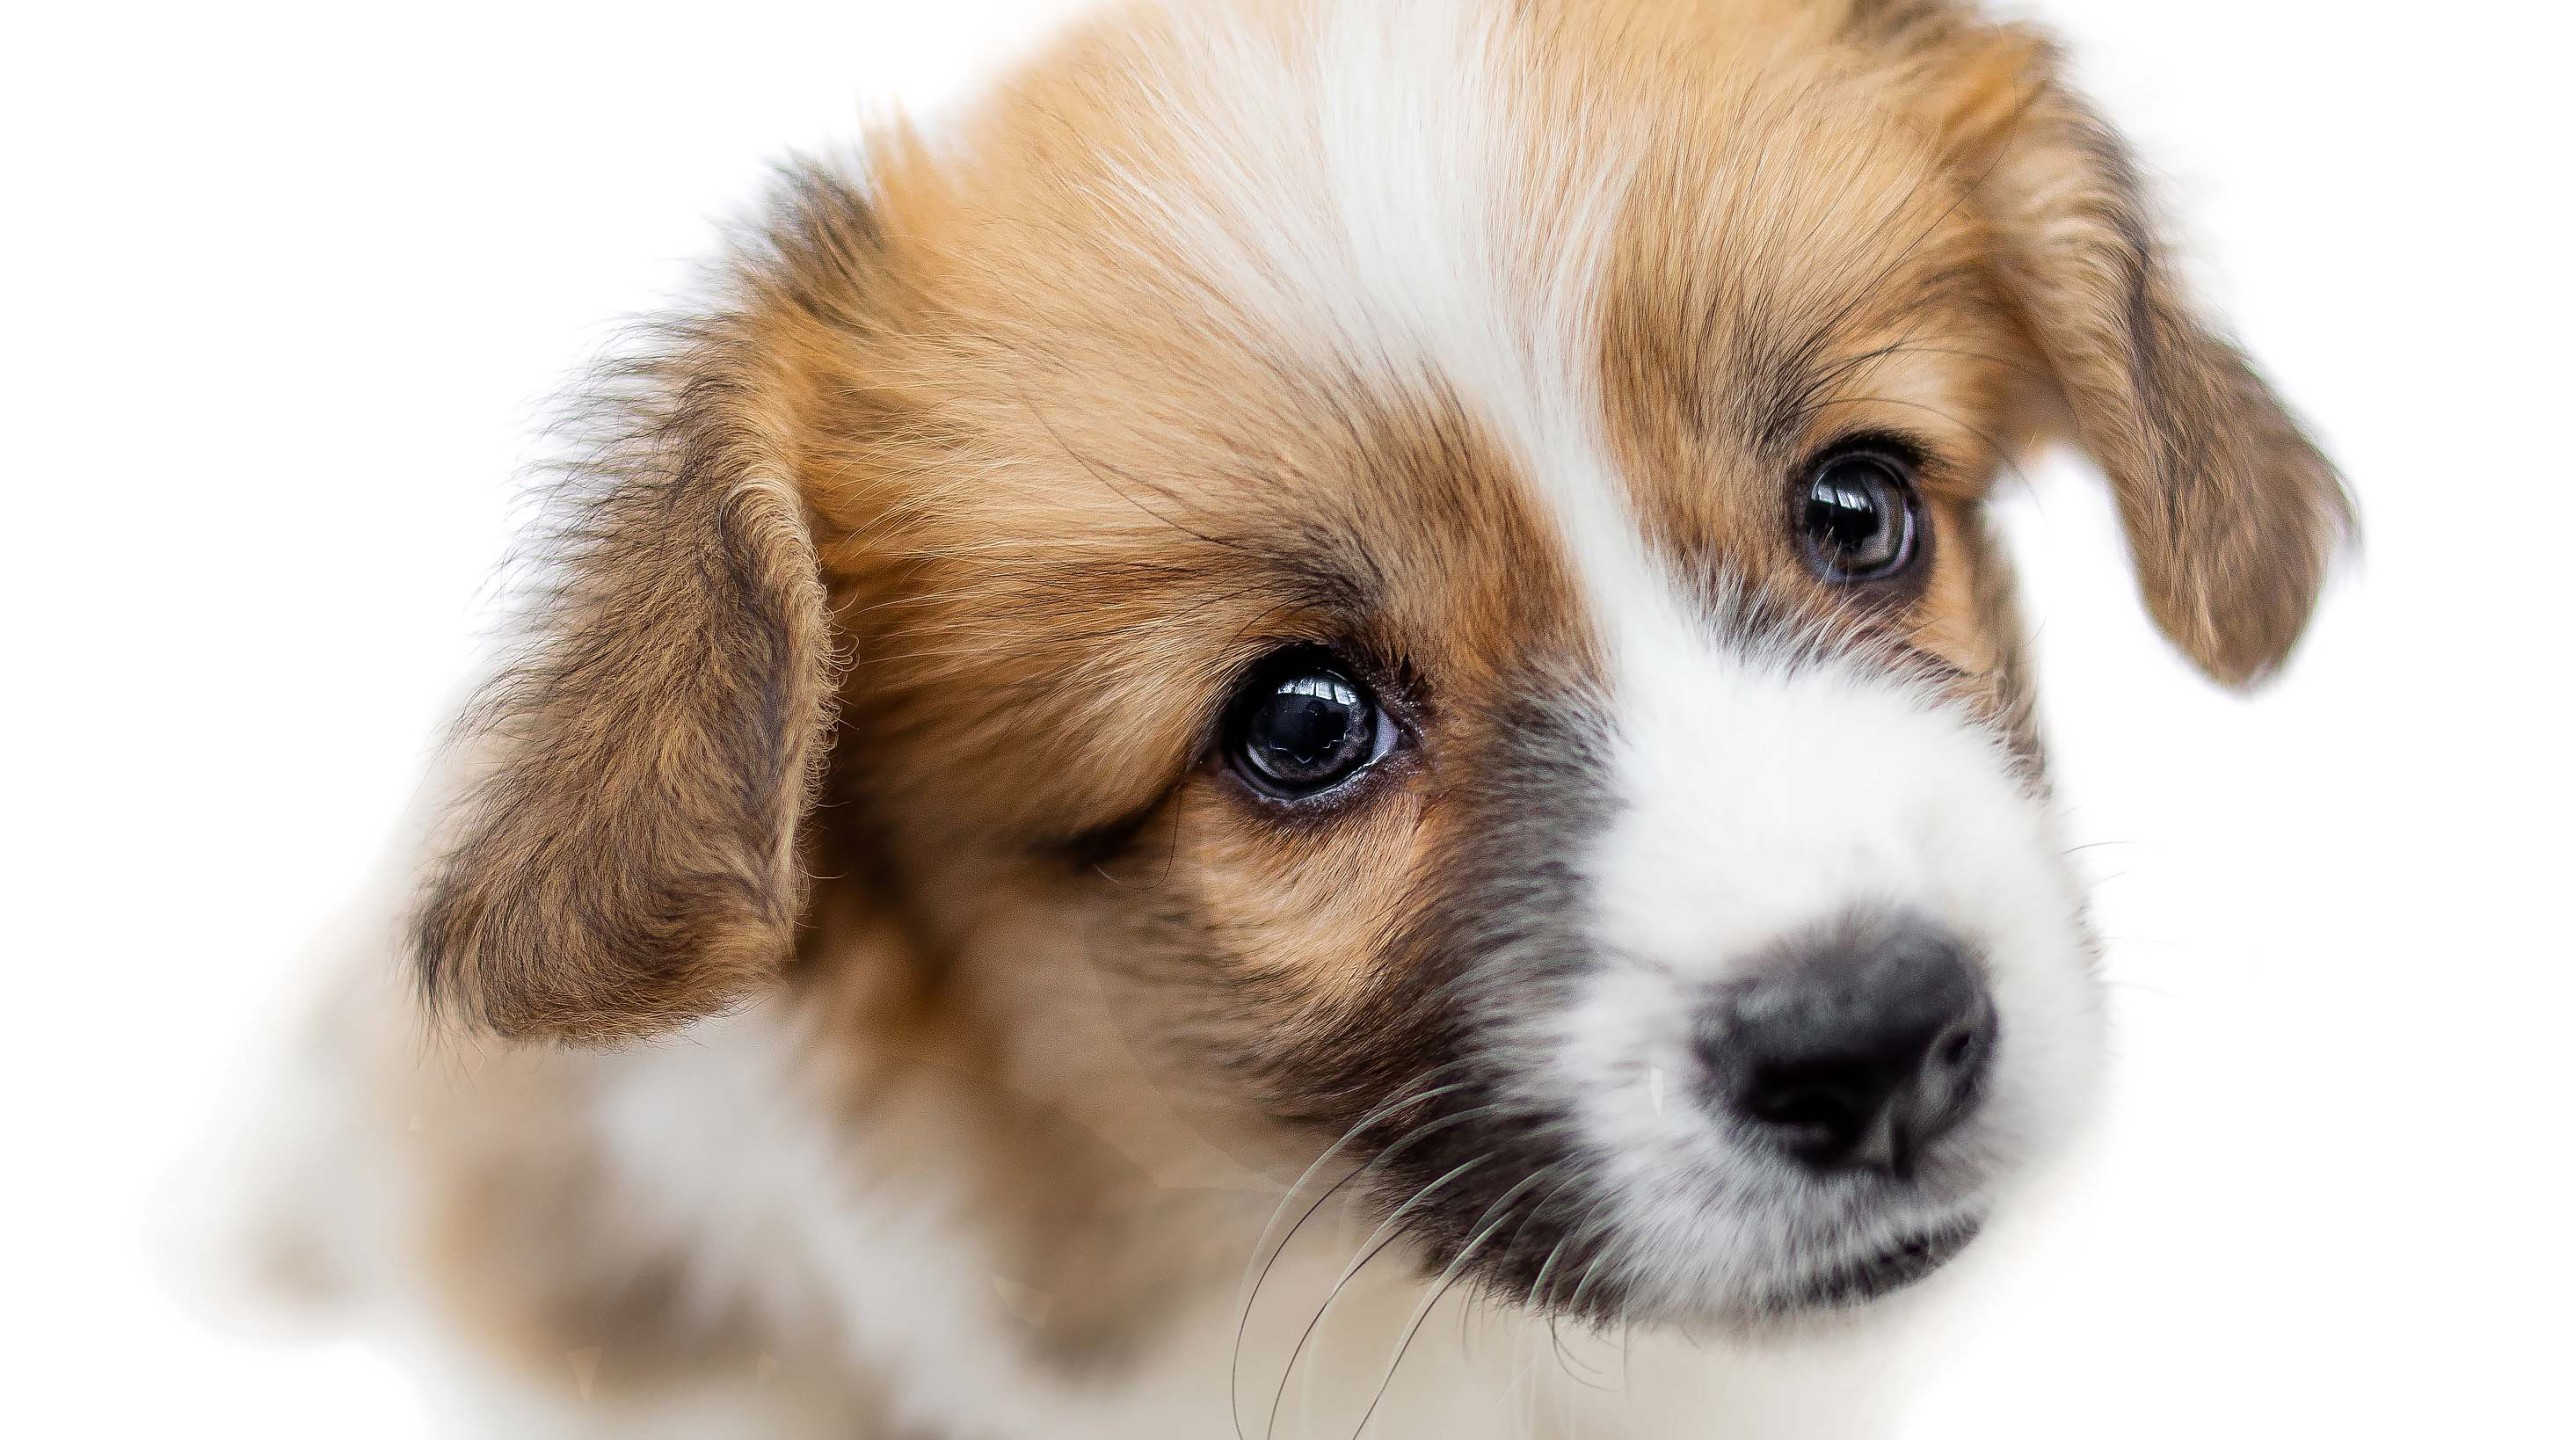 Cute Puppy Welsh Corgi Pembroke  Is Looking At Camera And Beggin_1553269747461